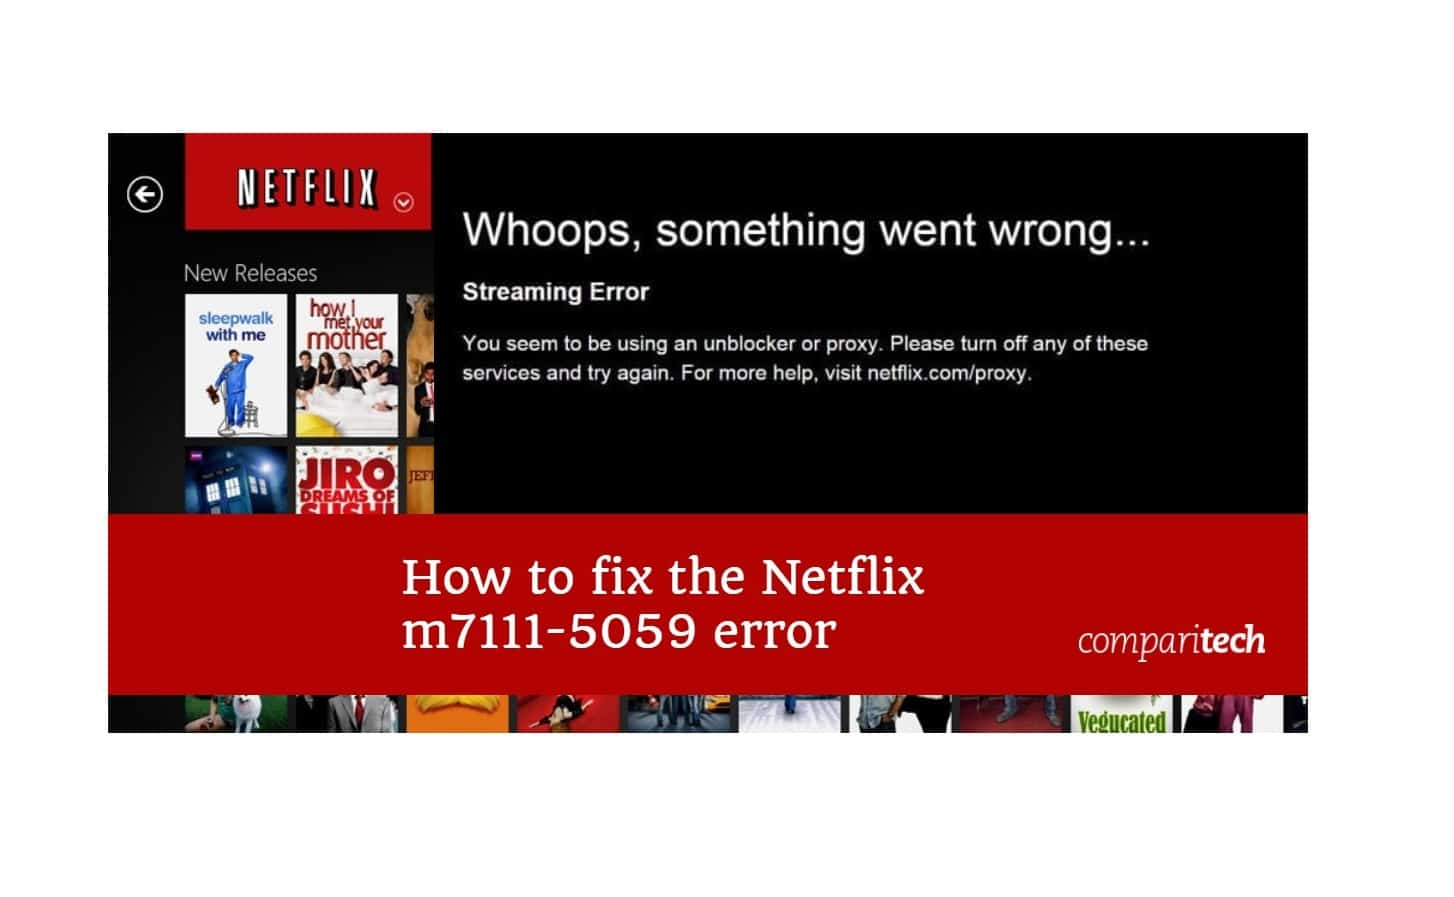 Fix Netflix Error Code m7111-1331-5059 (using a Unblocker or